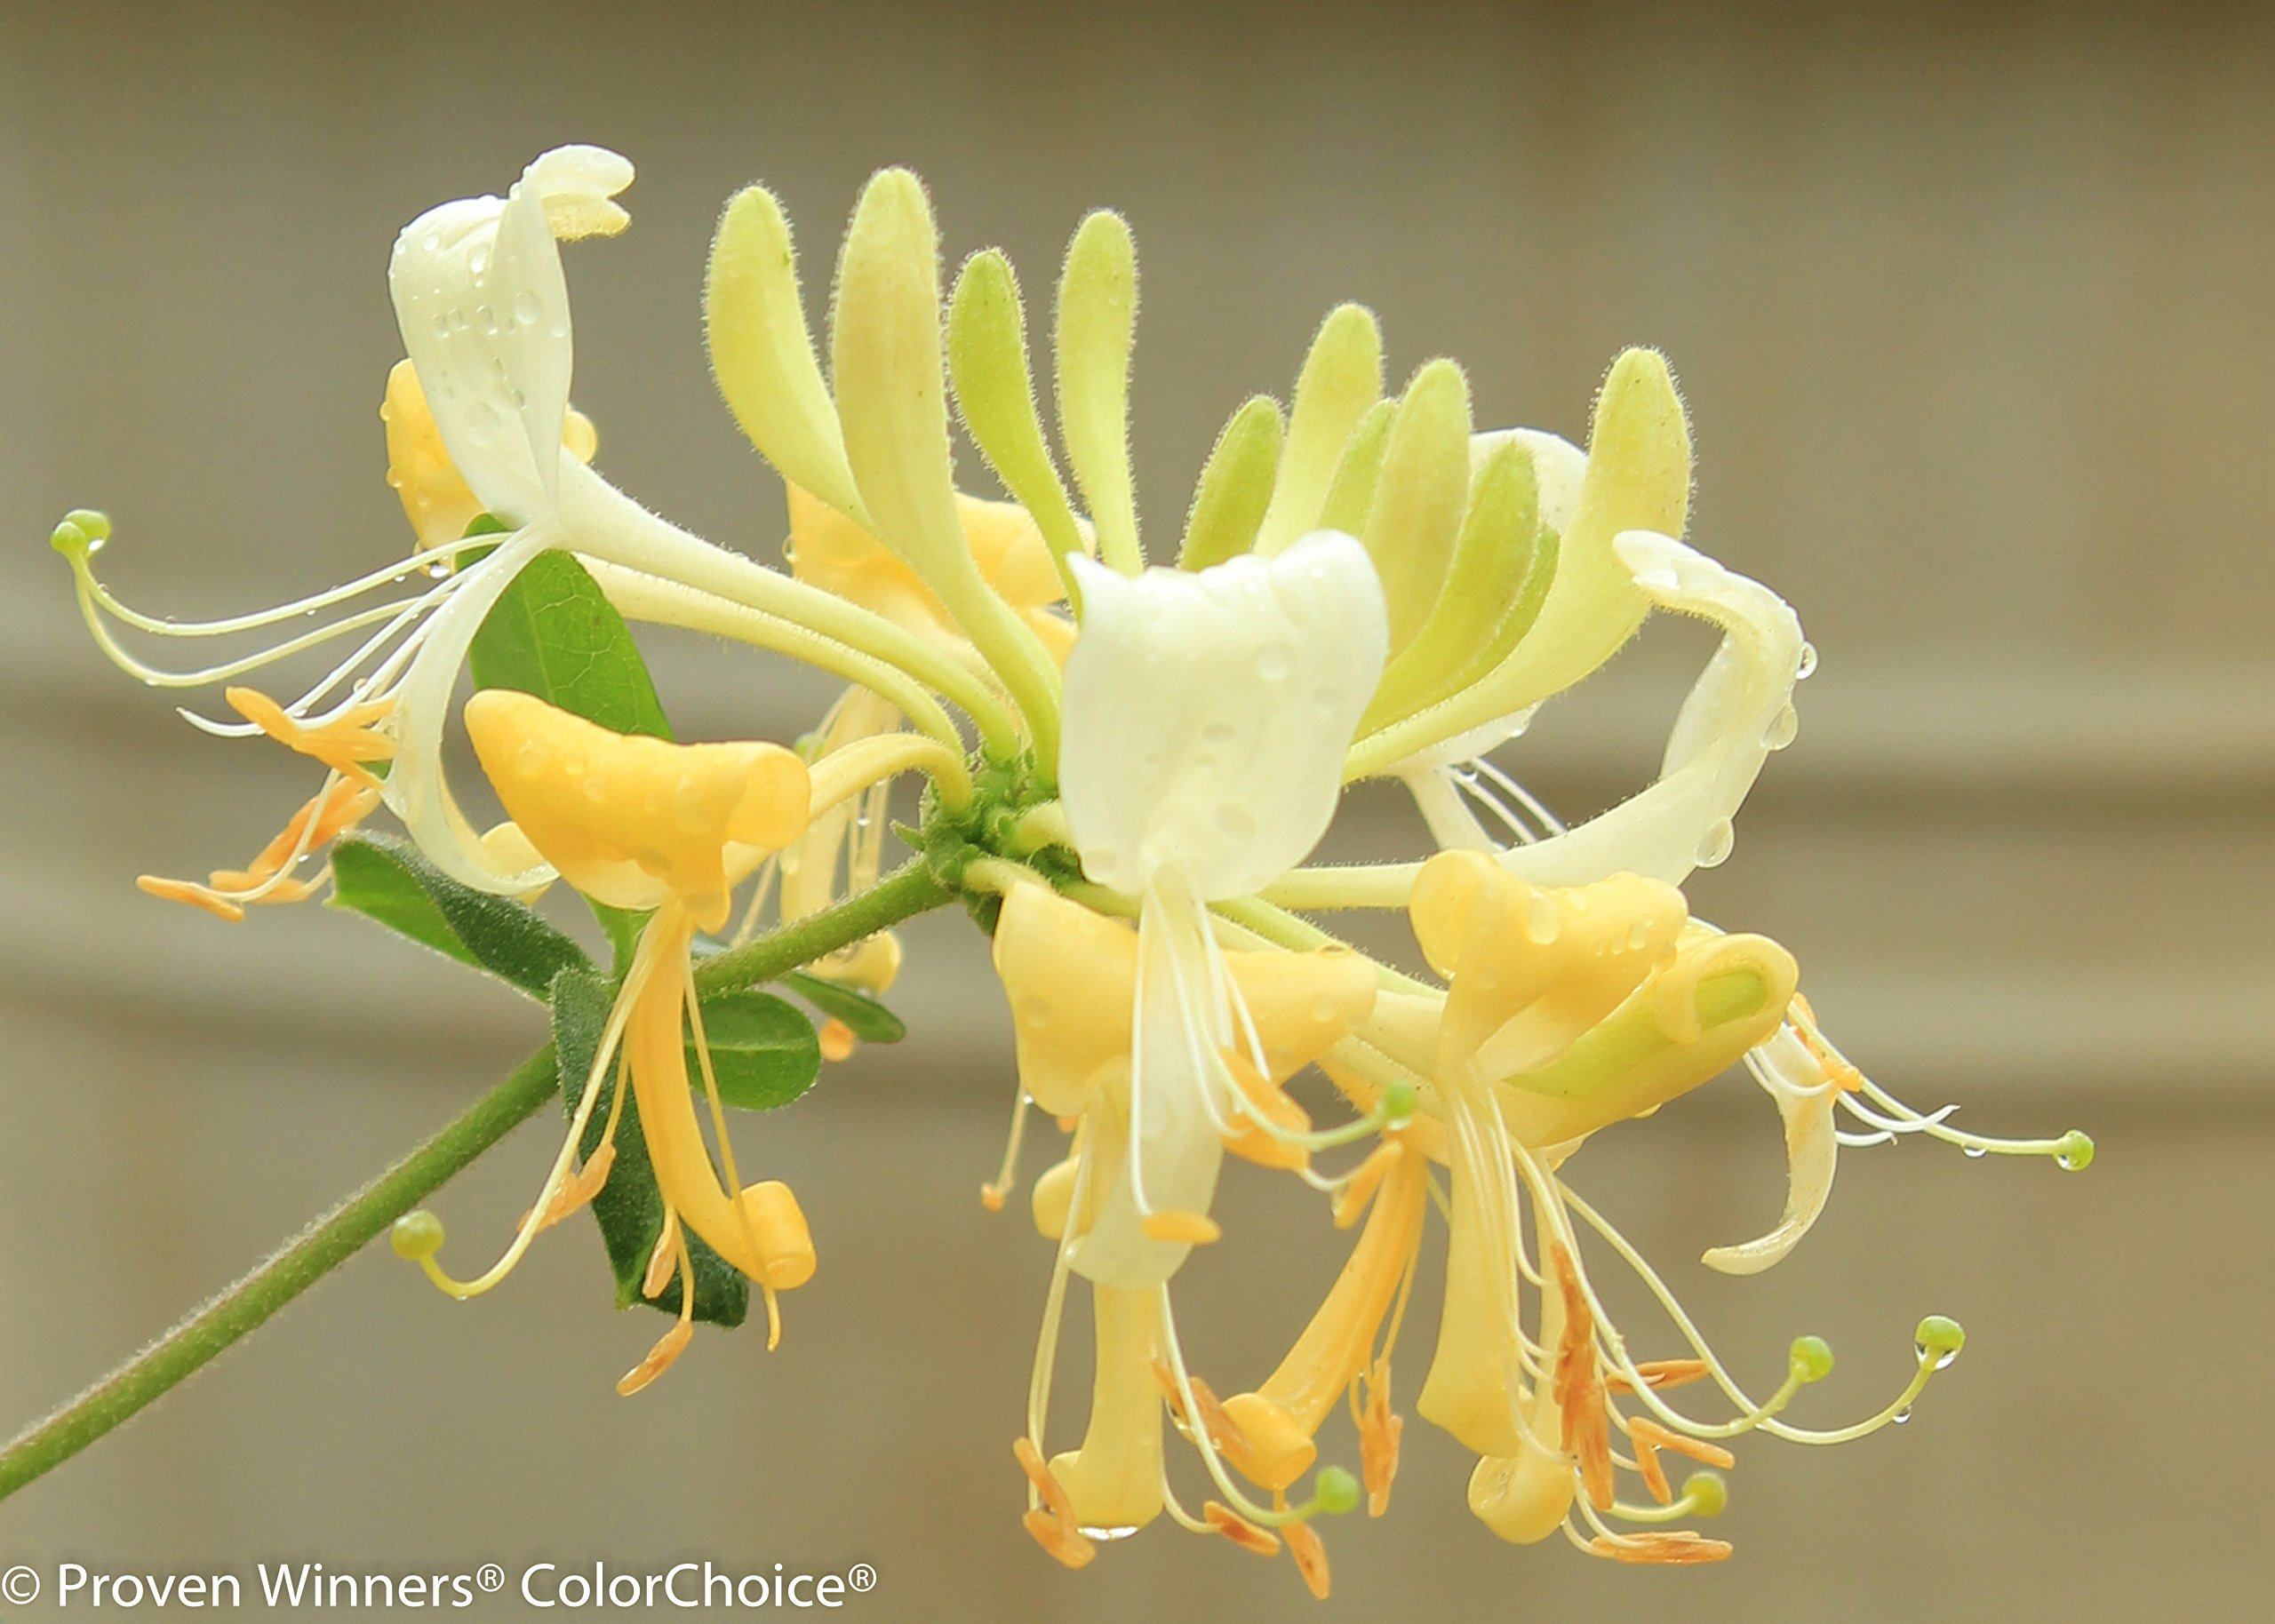 Scentsation Honeysuckle (Lonicera) Live Shrub, Yellow Flowers and Red Berries, 1 Gallon by Proven Winners (Image #6)